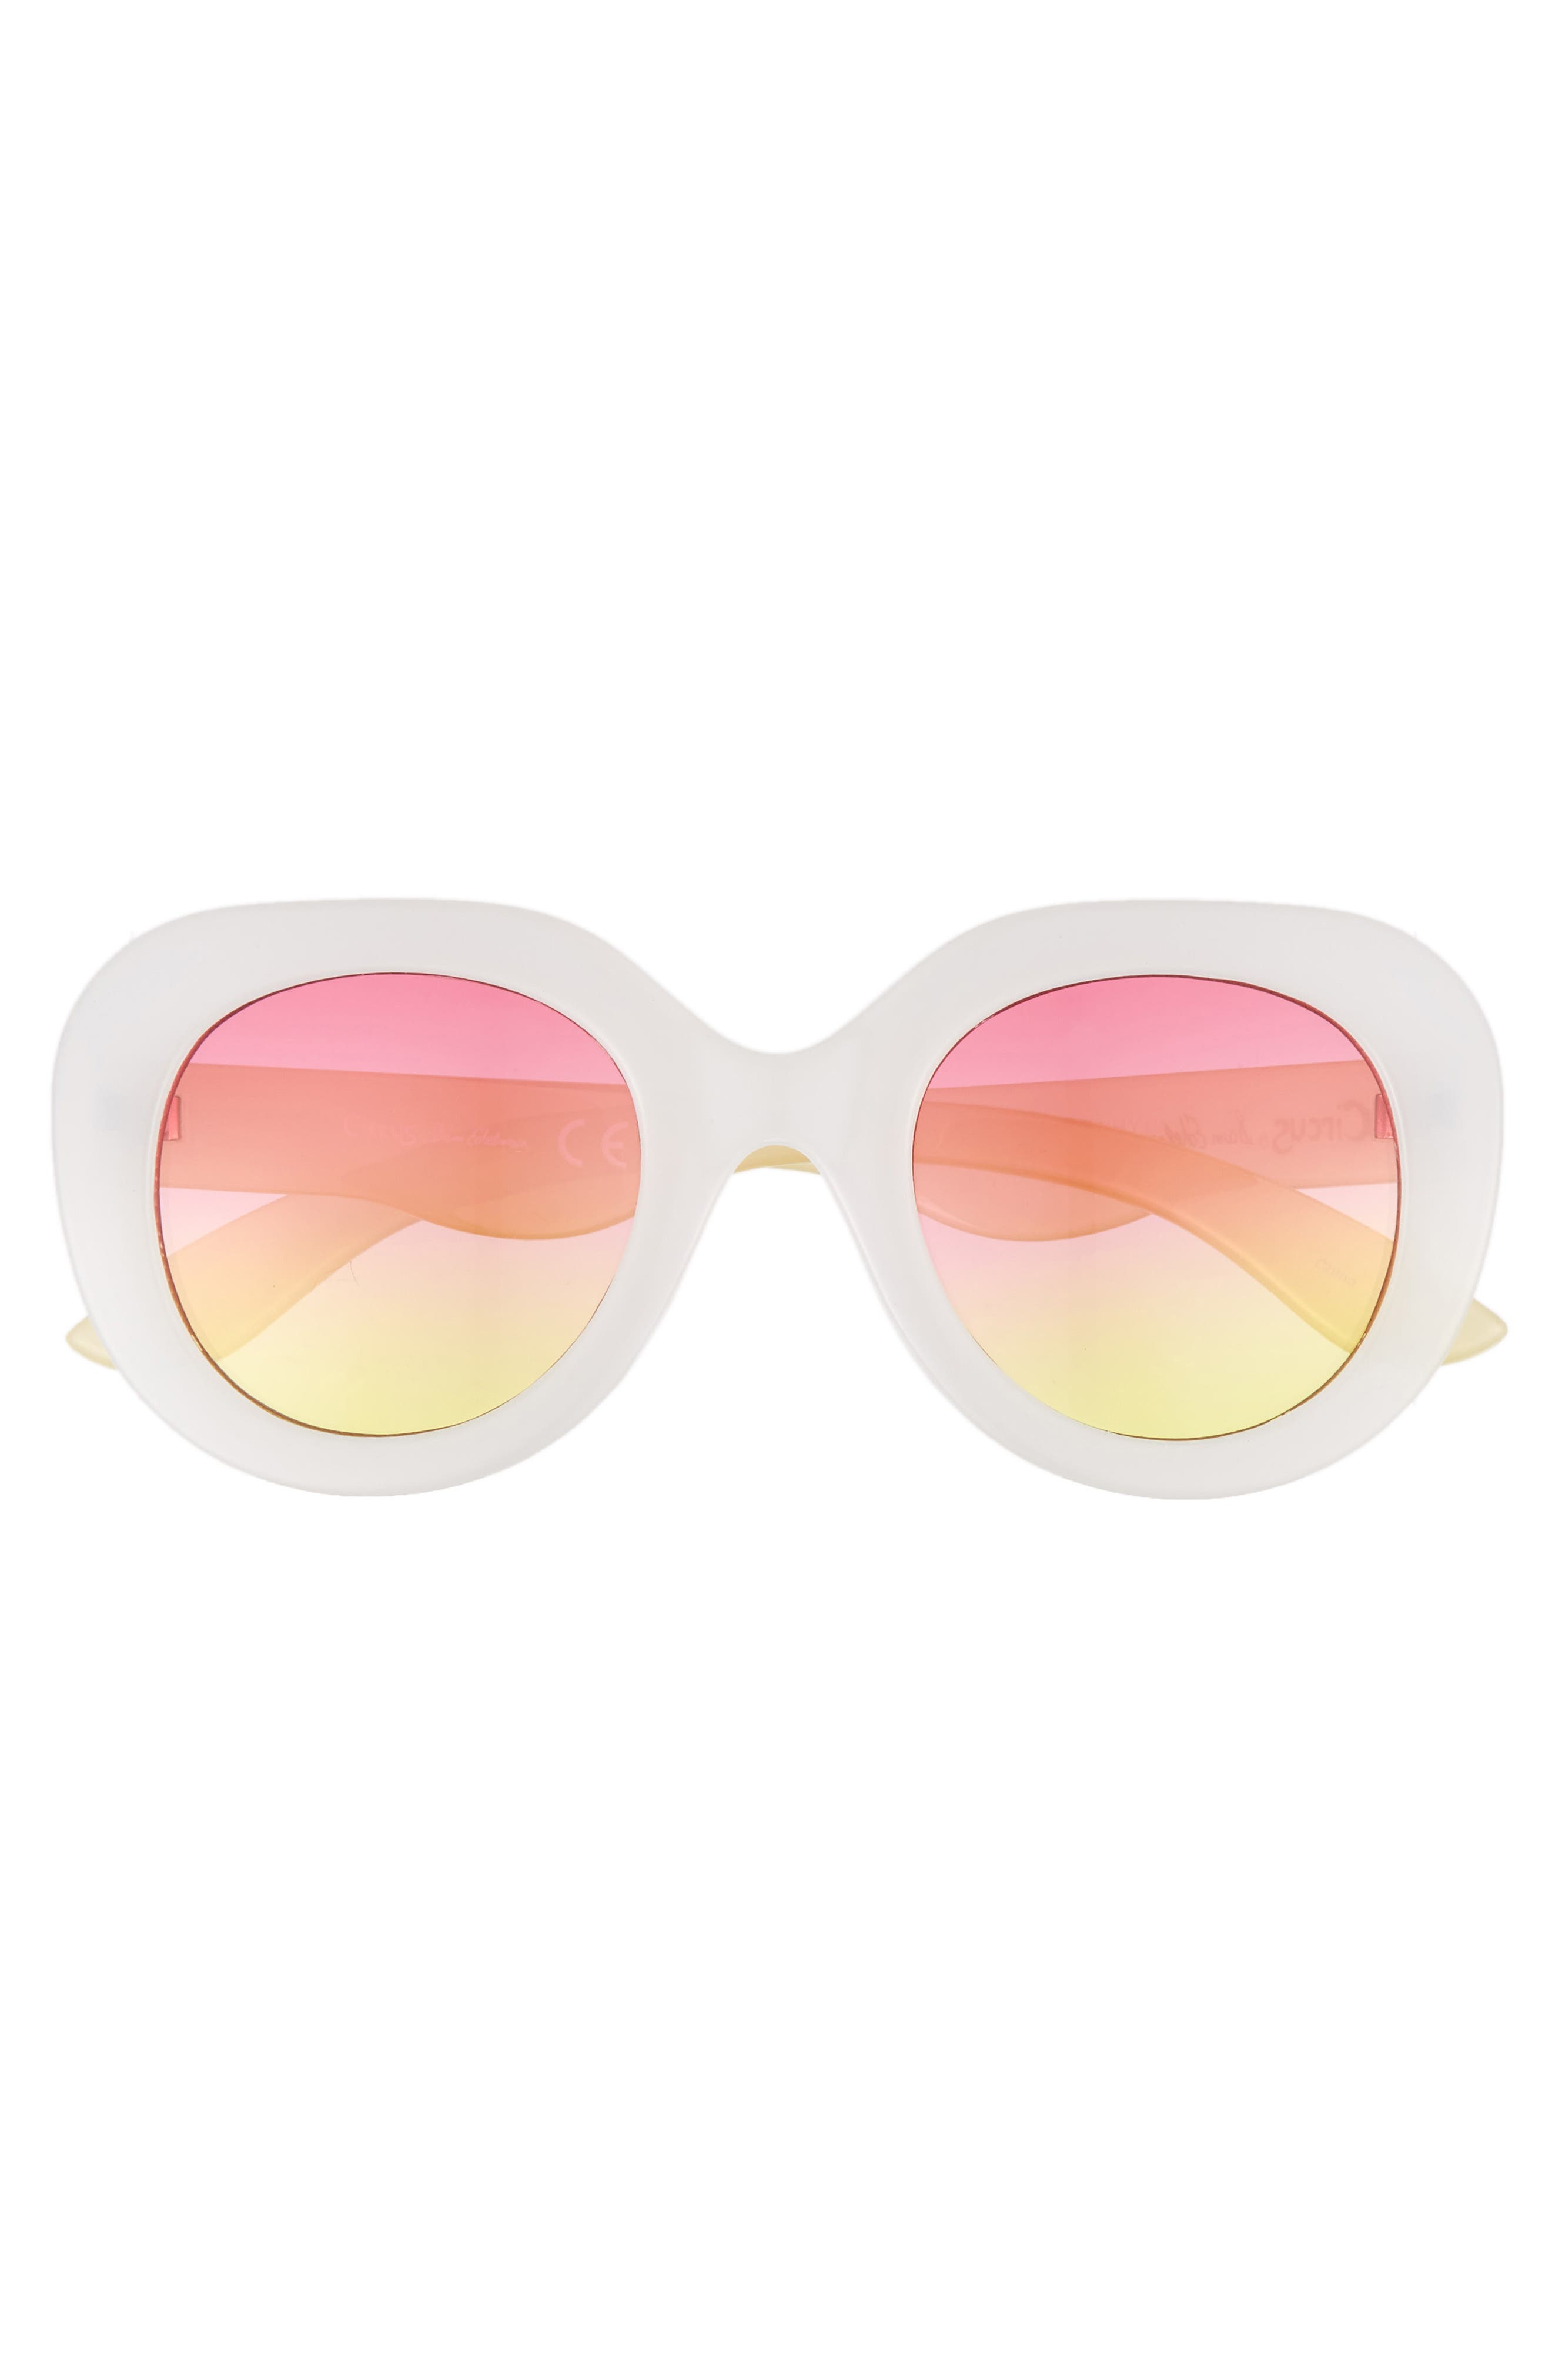 45mm Round Sunglasses,                             Alternate thumbnail 3, color,                             102